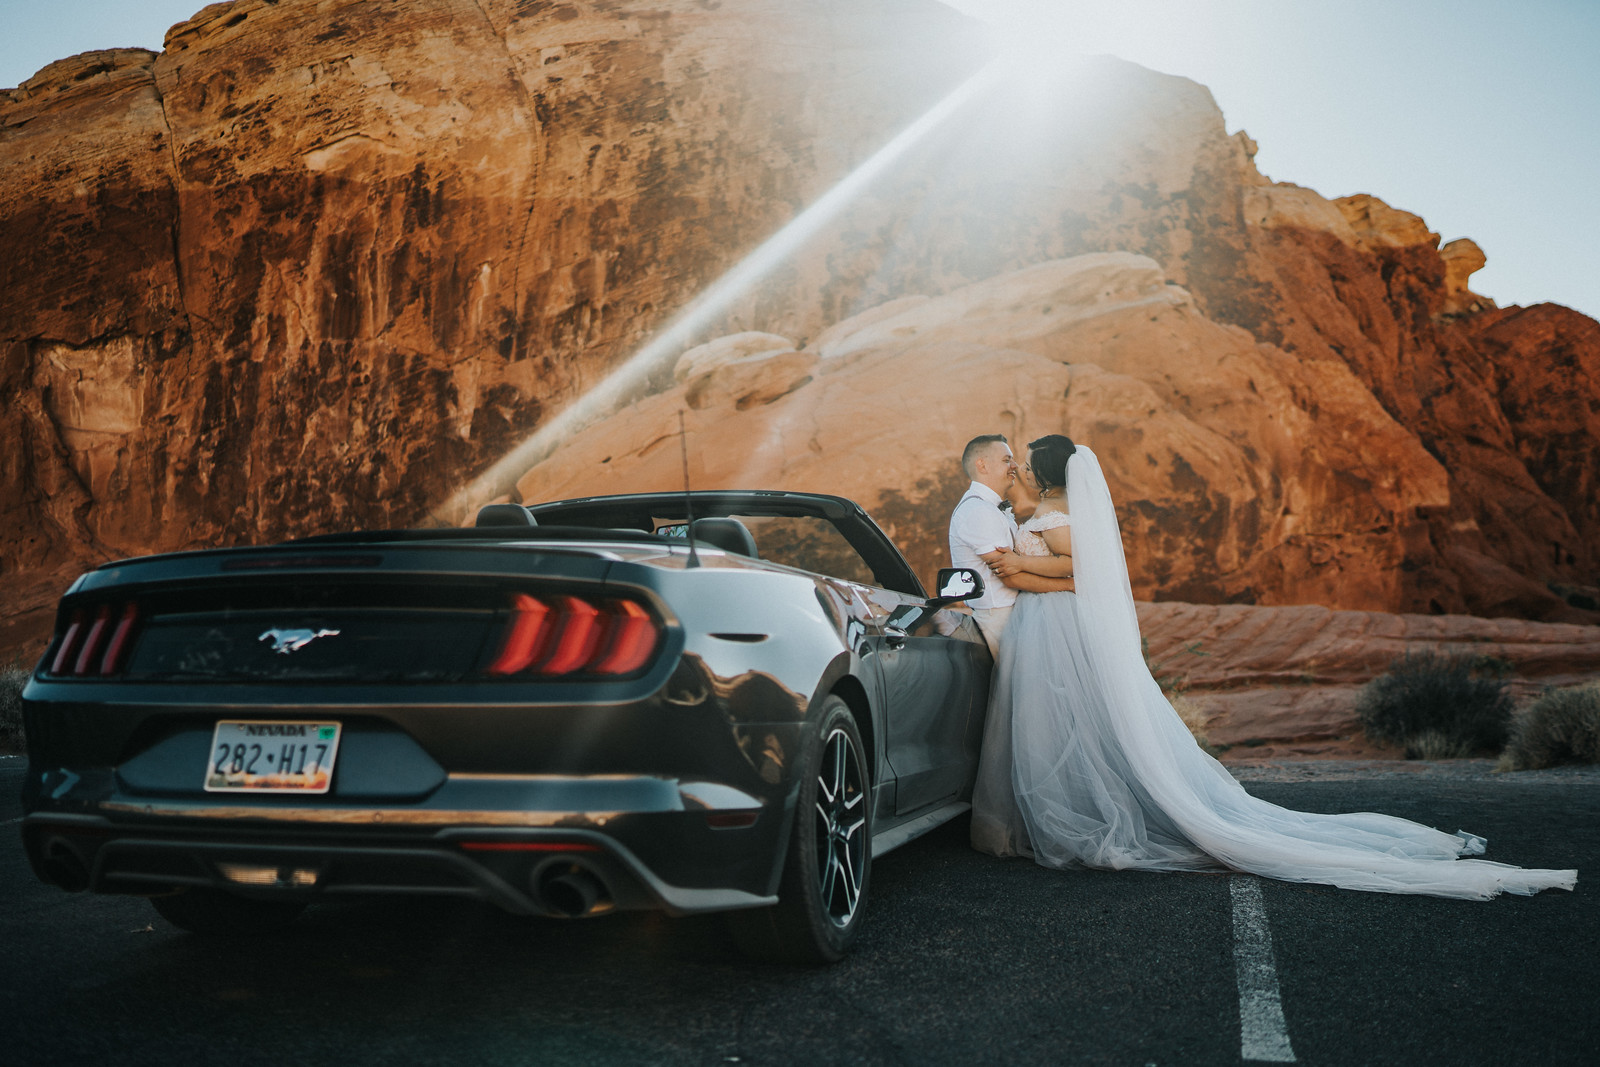 The couple look at each other whilst standing next to a car and their rock formation wedding venue in the background